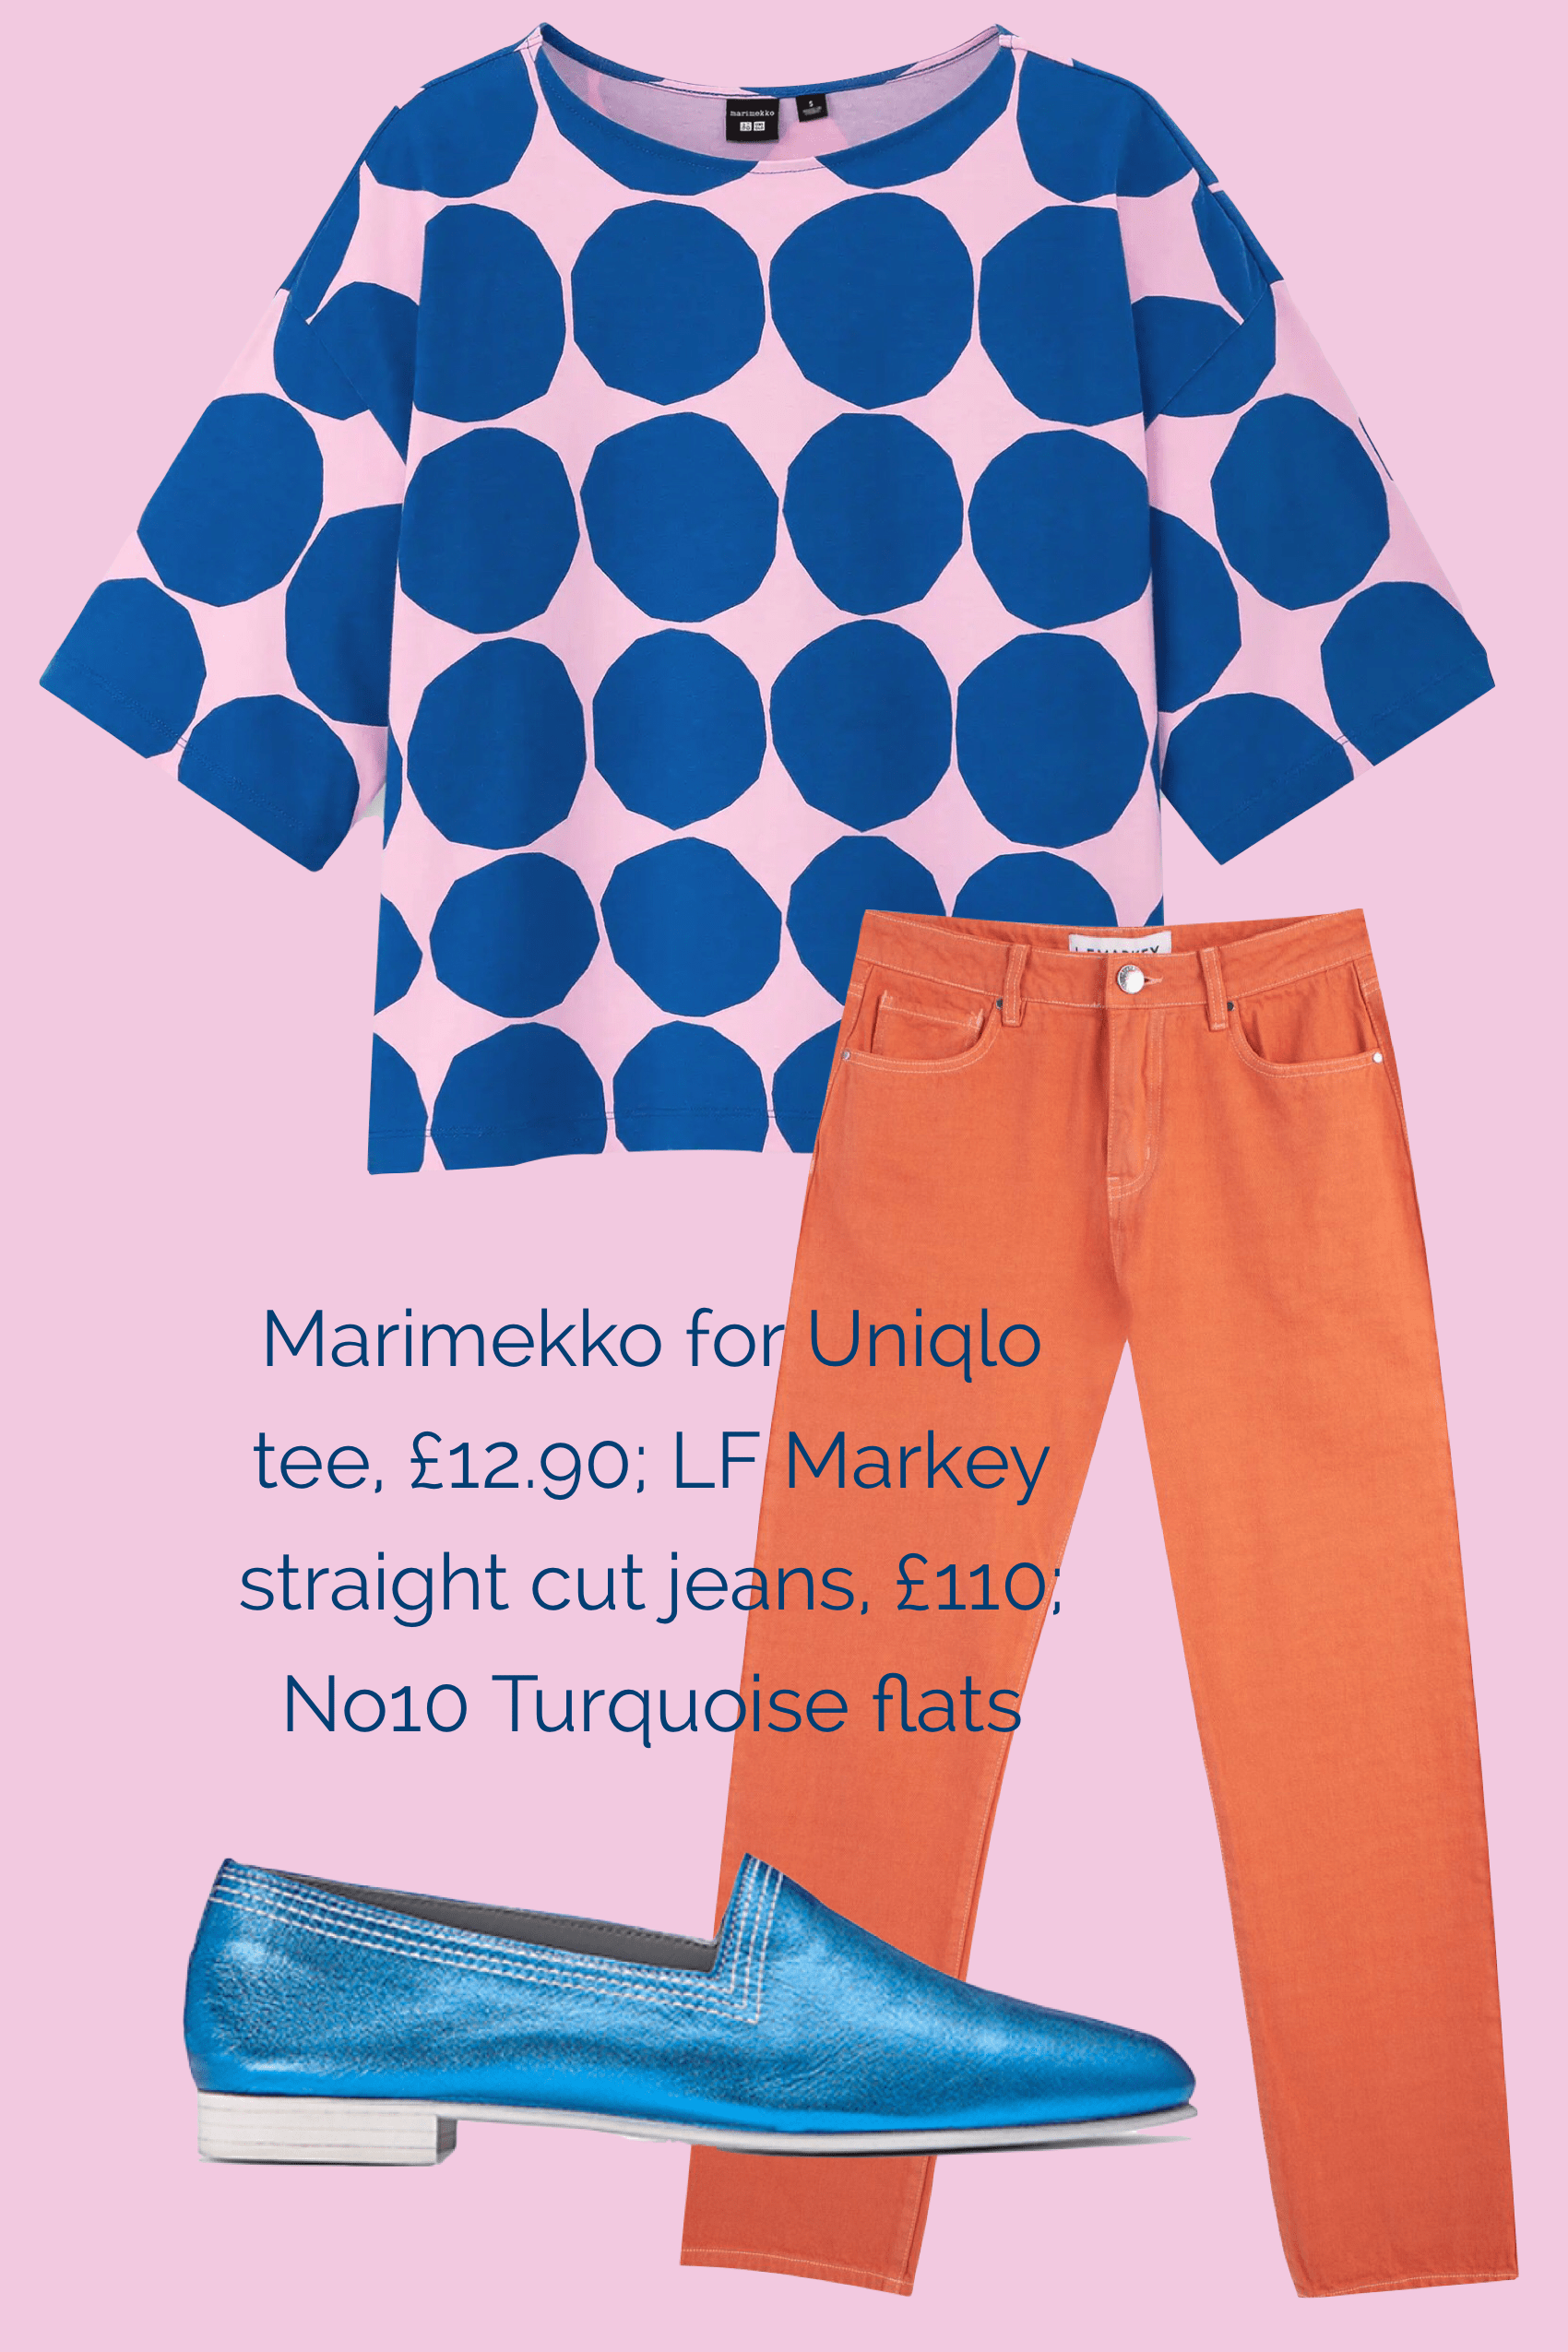 Ops&Ops No10 Turquoise Racer flats teamed with LF Markey jeans and Marimekko for Uniqlo t-shirt